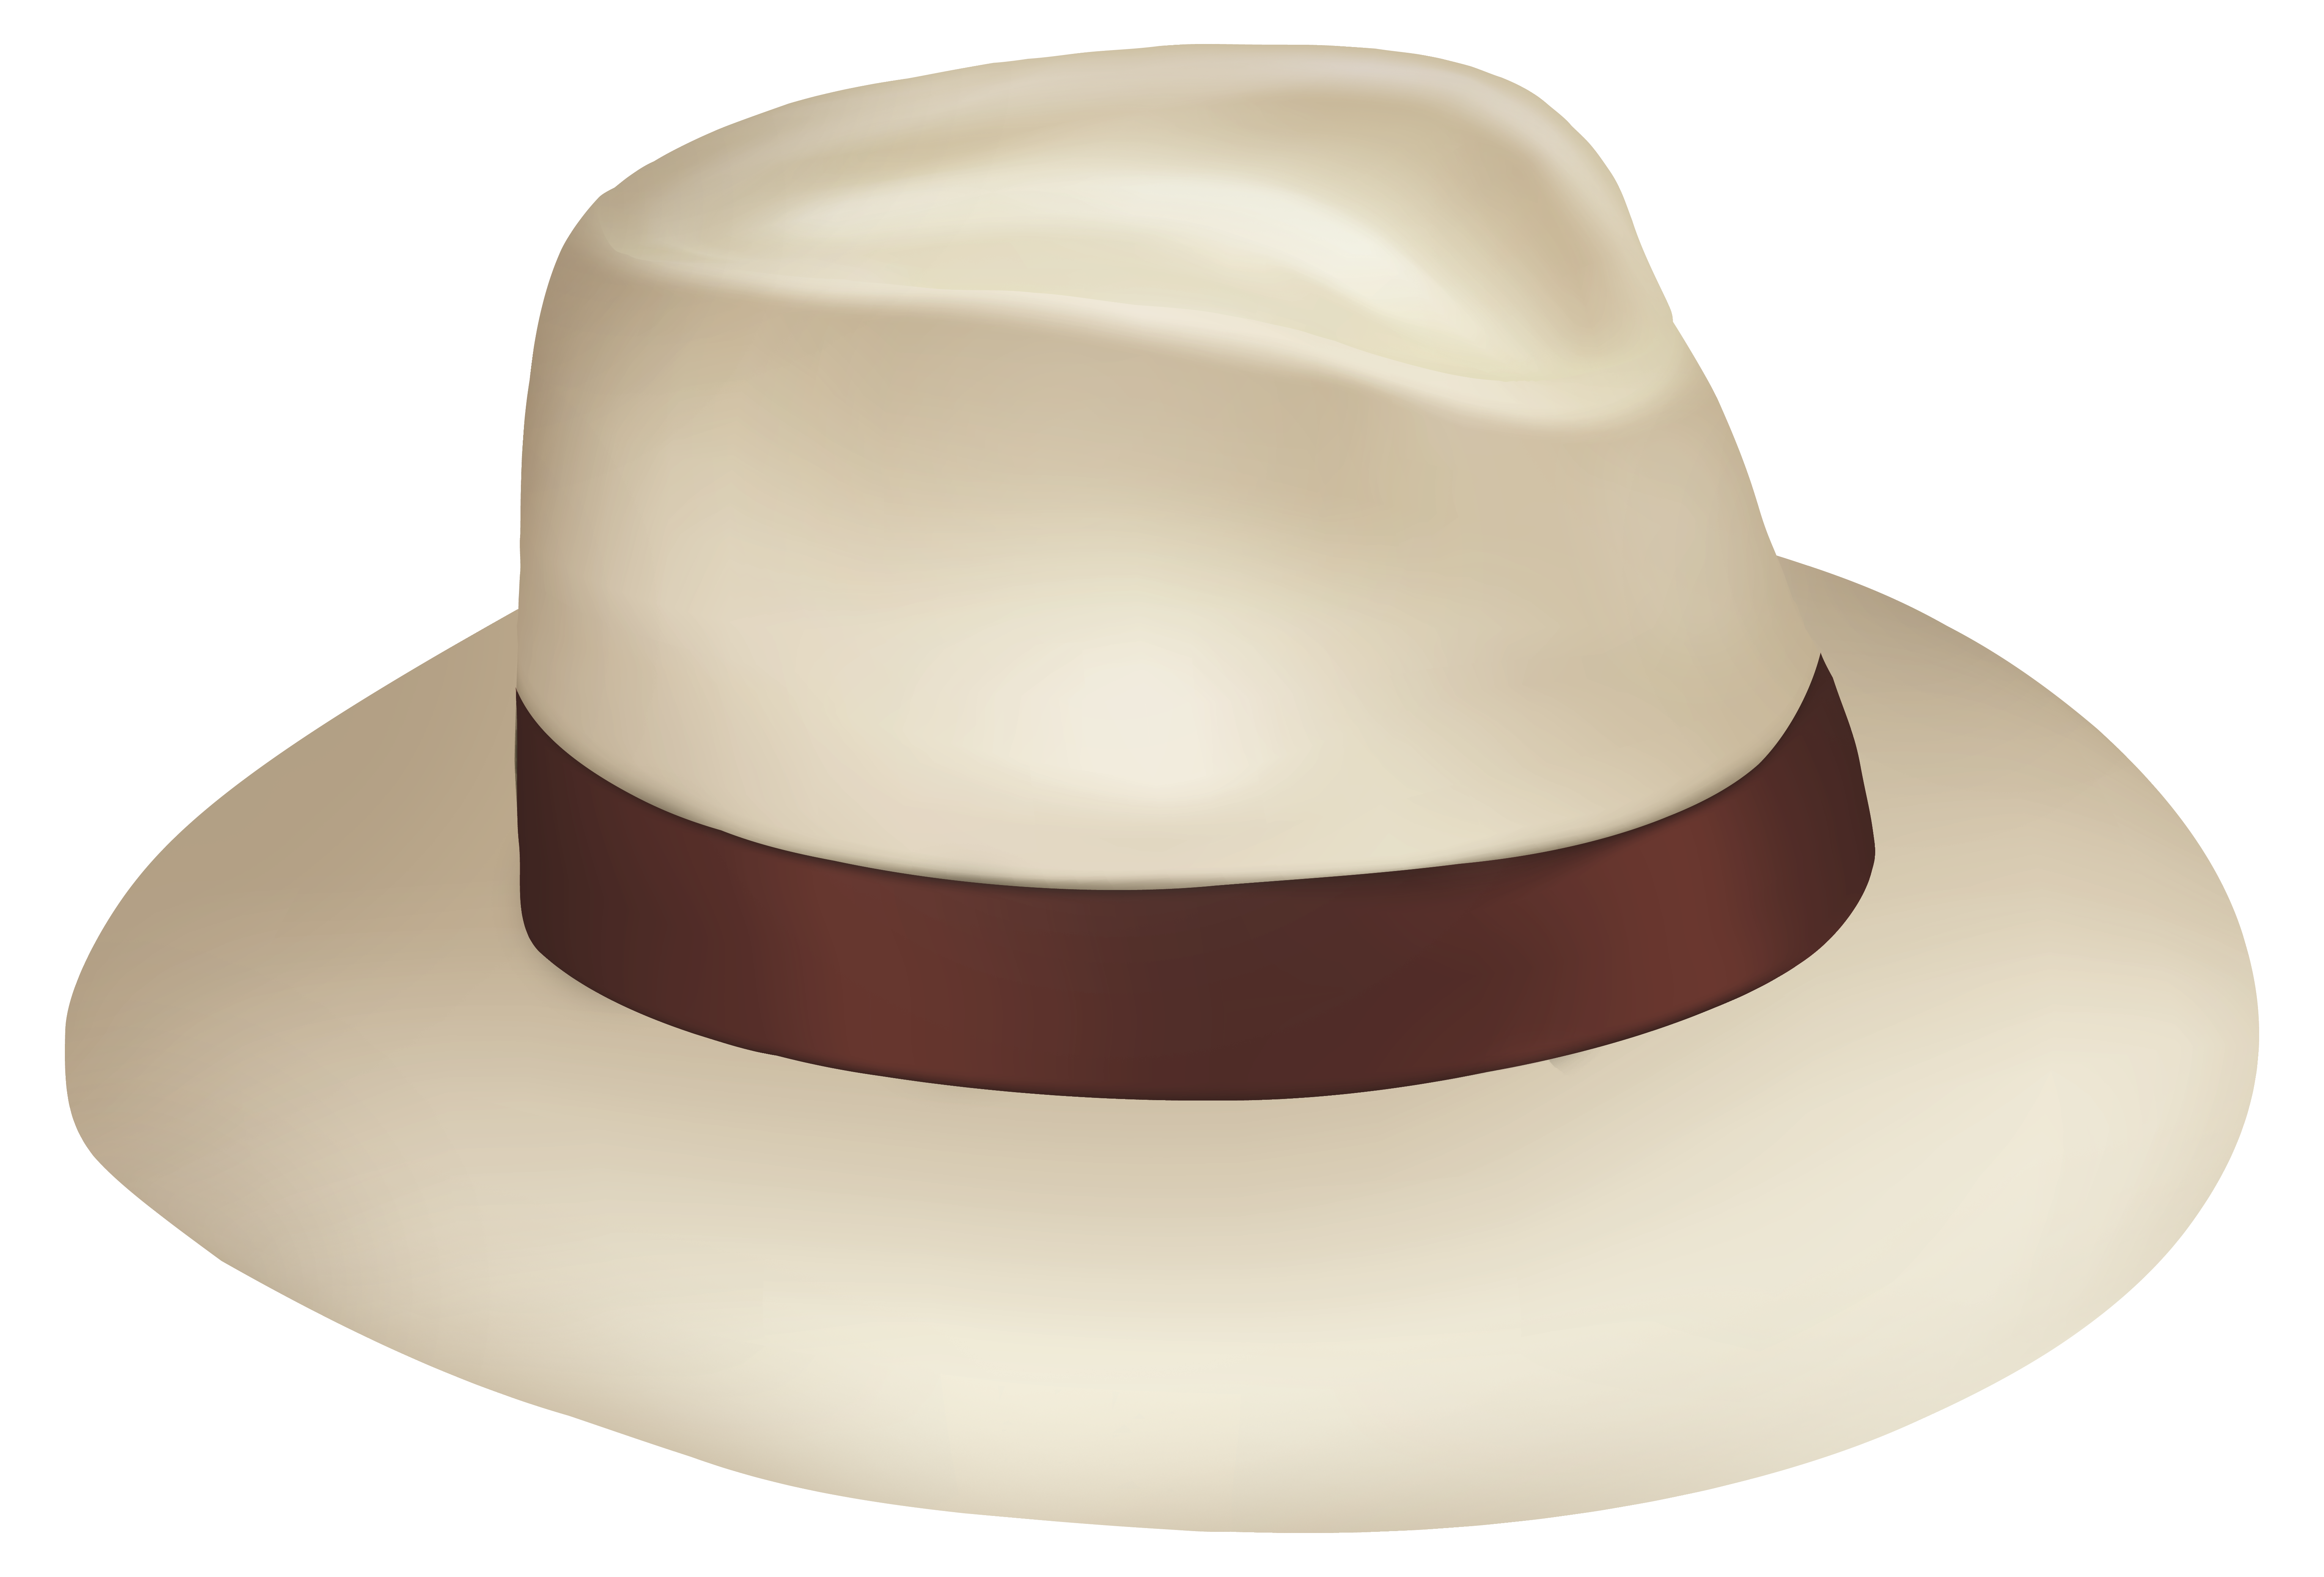 Sun hat clipart png picture transparent library Panama Sun Hat With Brown Ribbon PNG Clipart - Best WEB Clipart picture transparent library